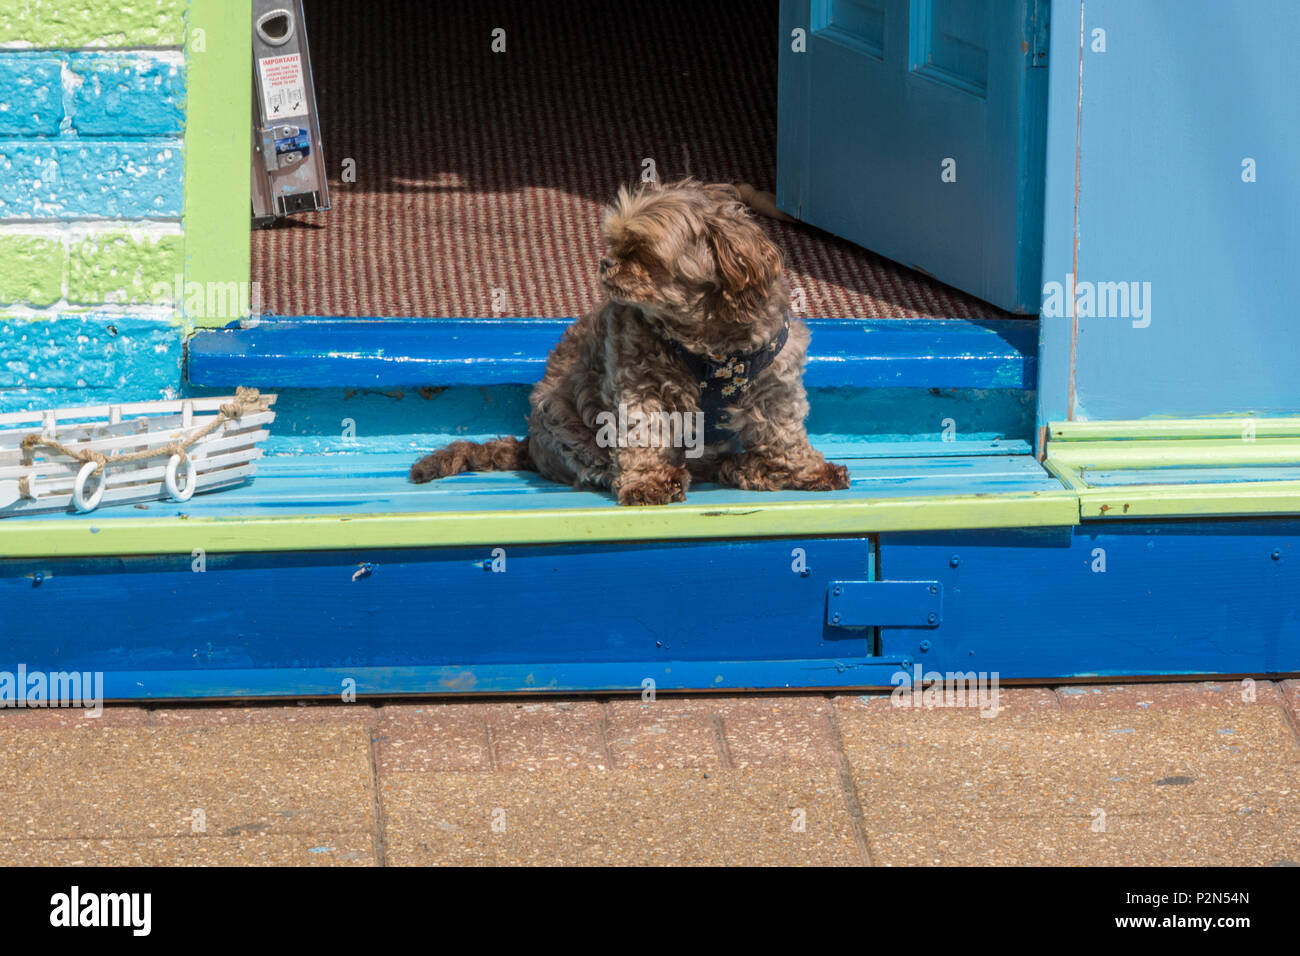 a cute little dig sitting on the steps of a café or shop with the door open enjoying watching people pass by on a sunny day. funny cute dog sitting. - Stock Image